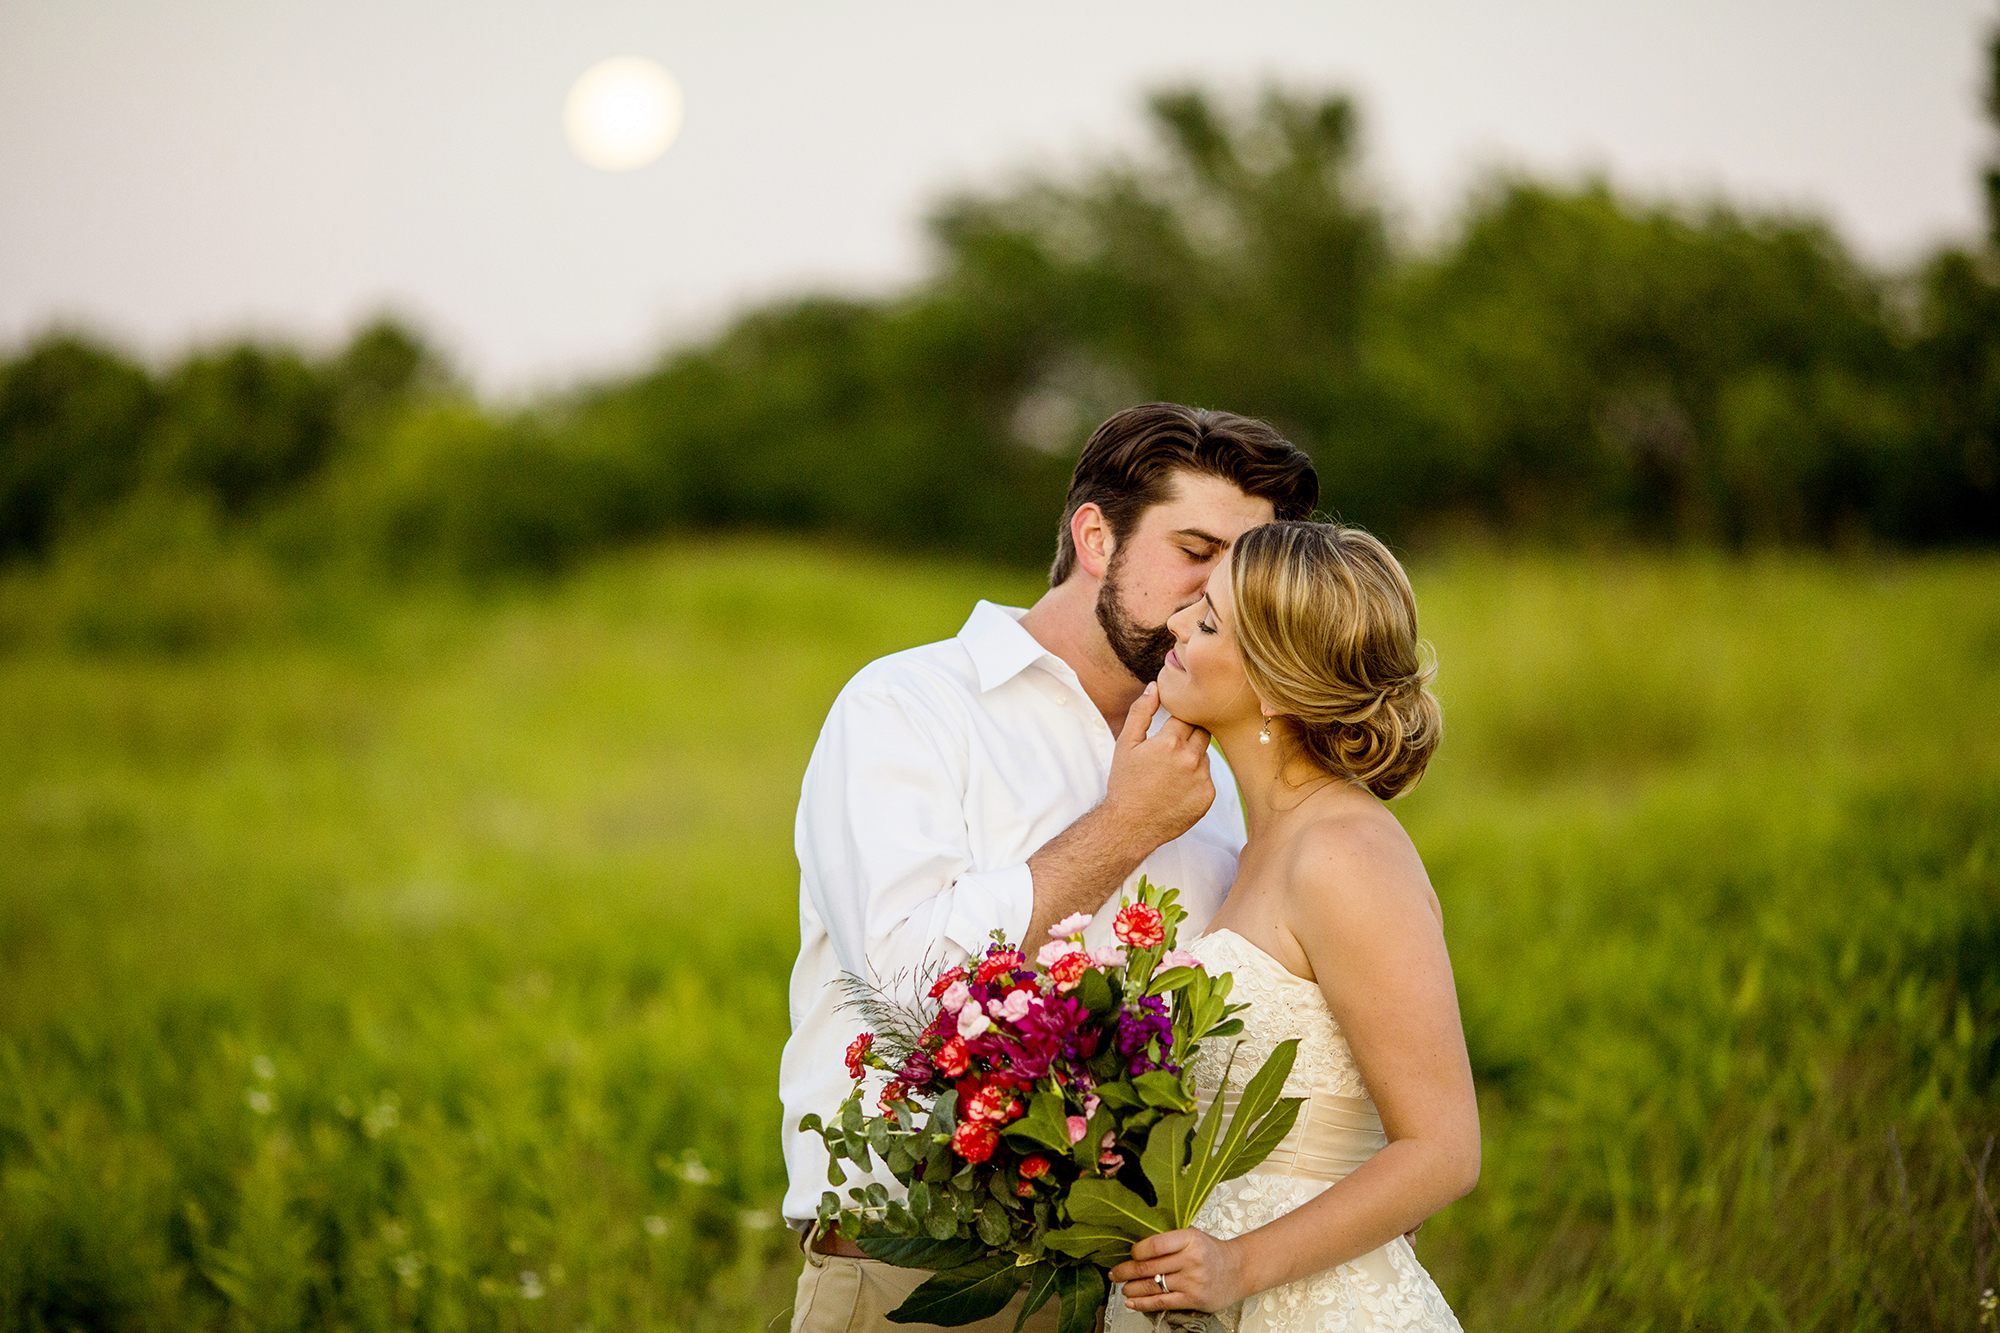 Seriously_Sabrina_Photography_Lexington_Kentucky_Romantic_Shakertown_Wedding_Portraits_Mazzetti37.jpg